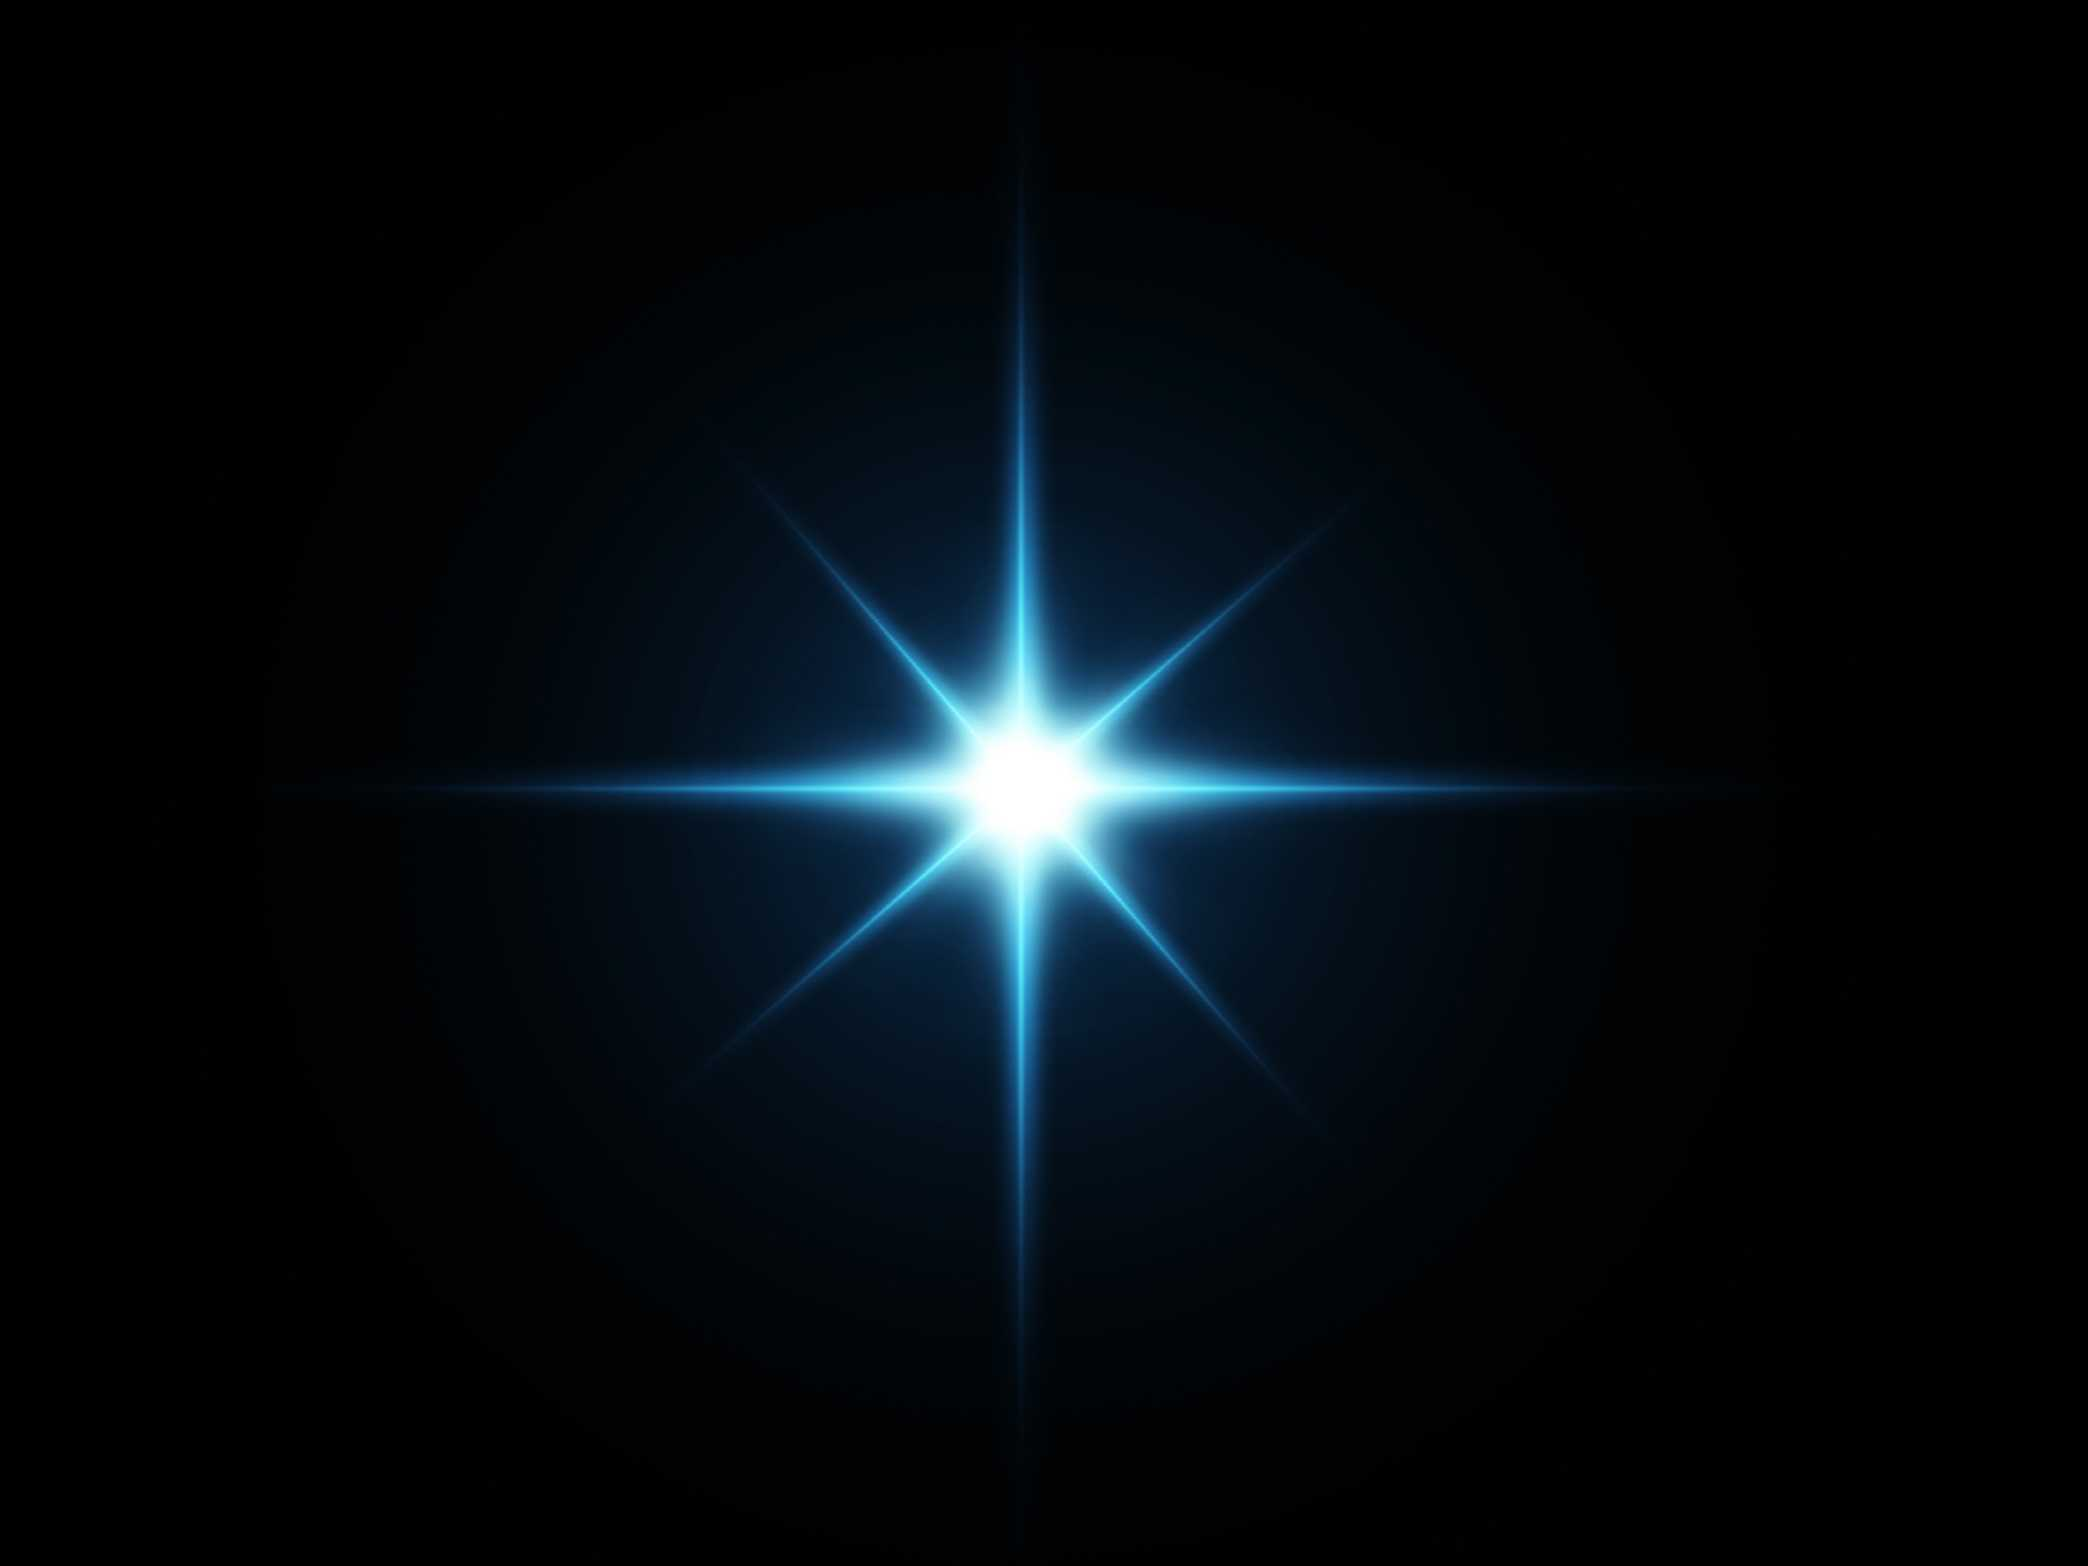 Can Astronomy Explain the Biblical Star of Bethlehem?